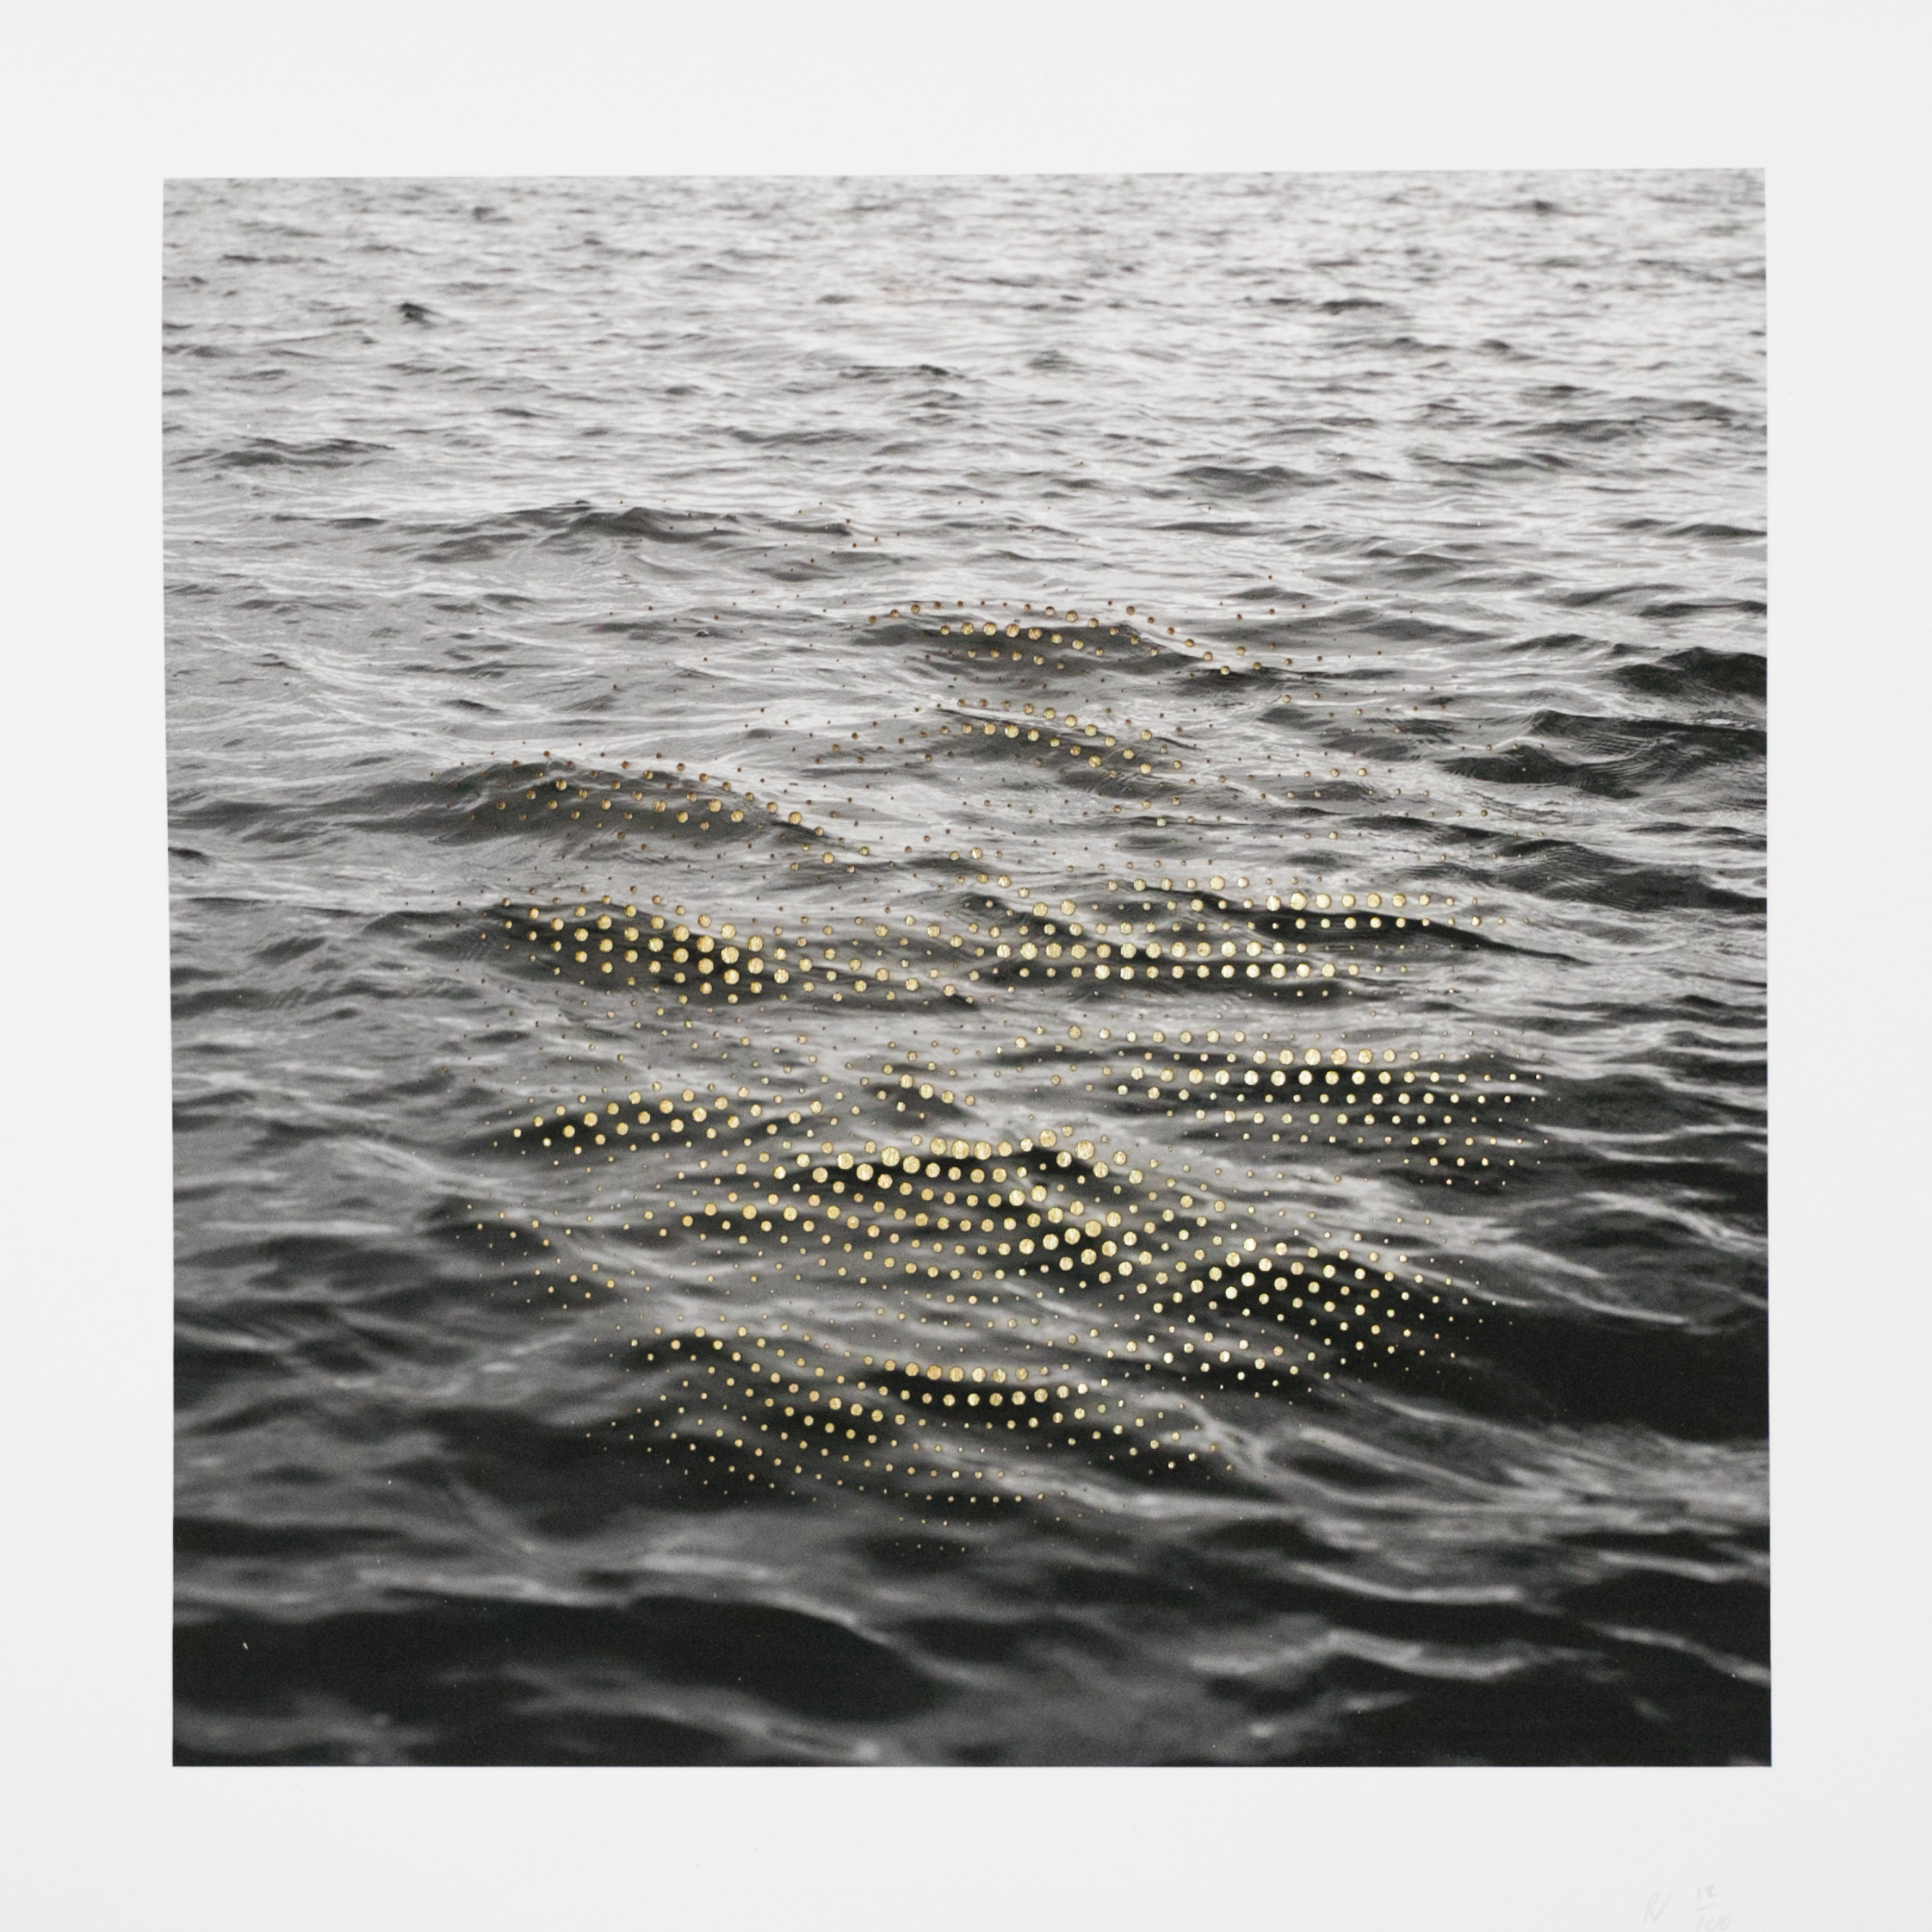 """ED006: Ryan Van Der Hout - Swell  2018 Laser cut archival pigment print on archival Cold Press paper (305 GSM, 19 mil.), gold leaf 11"""" x 11"""" Signed and numbered in pencil  recto verso  Edition of 100"""